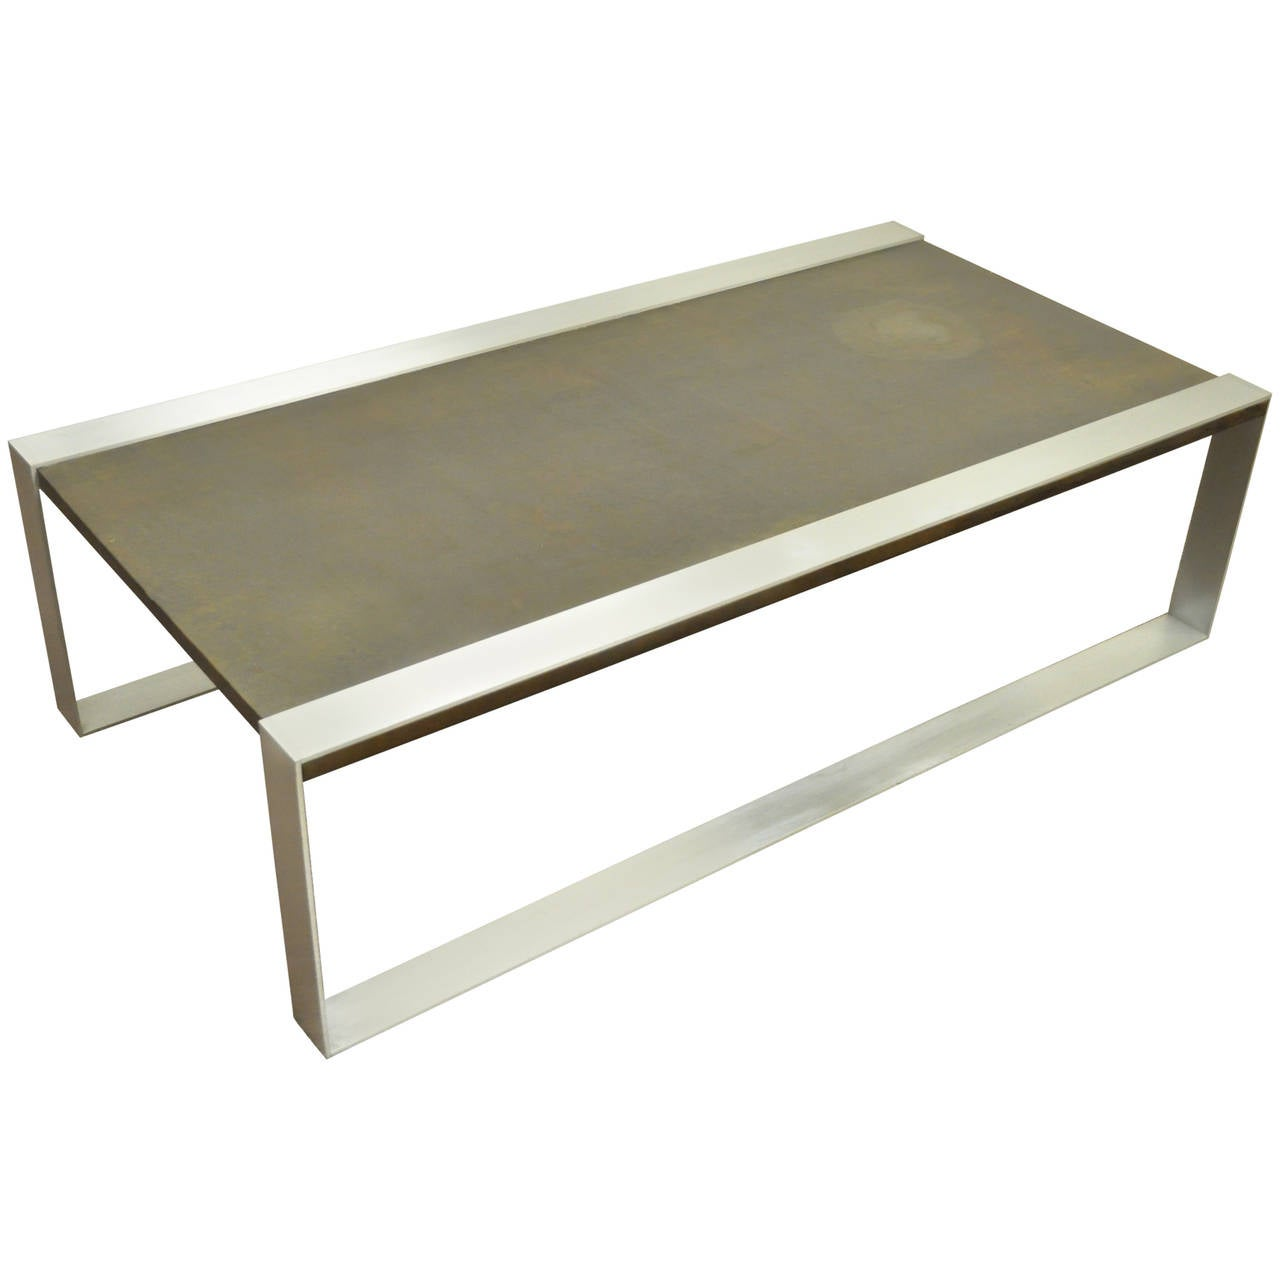 Mid-Century Modern Embossed Copper and Brushed Steel Coffee Table after Laverne